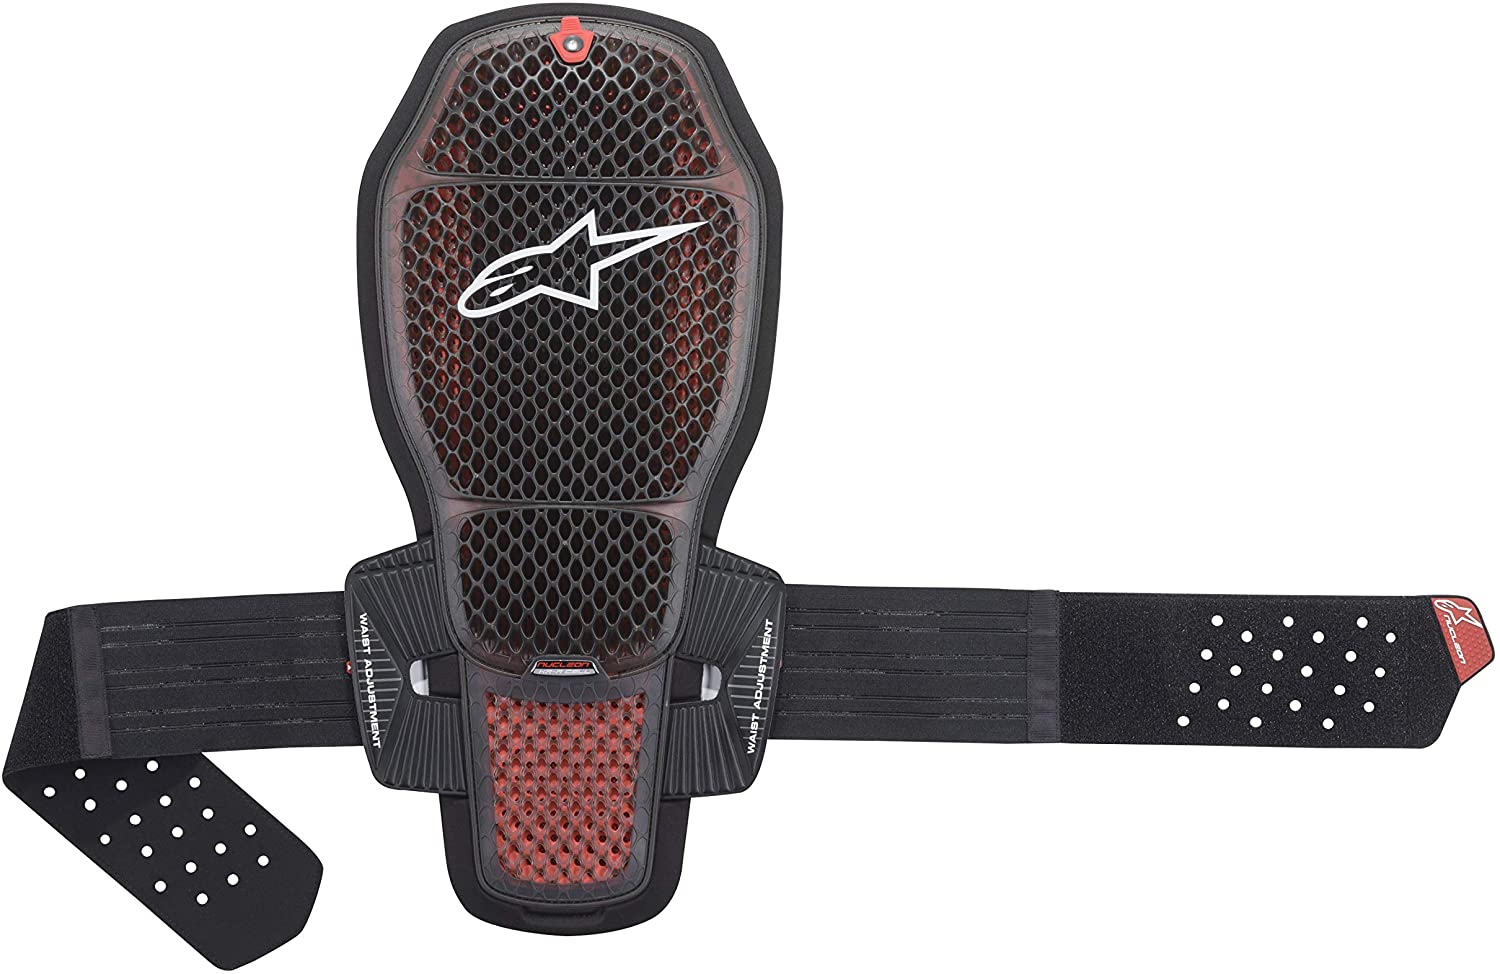 Alpinestars Nucleon KR-R Cell Motorcycle Back Protector, Black/Red, Medium